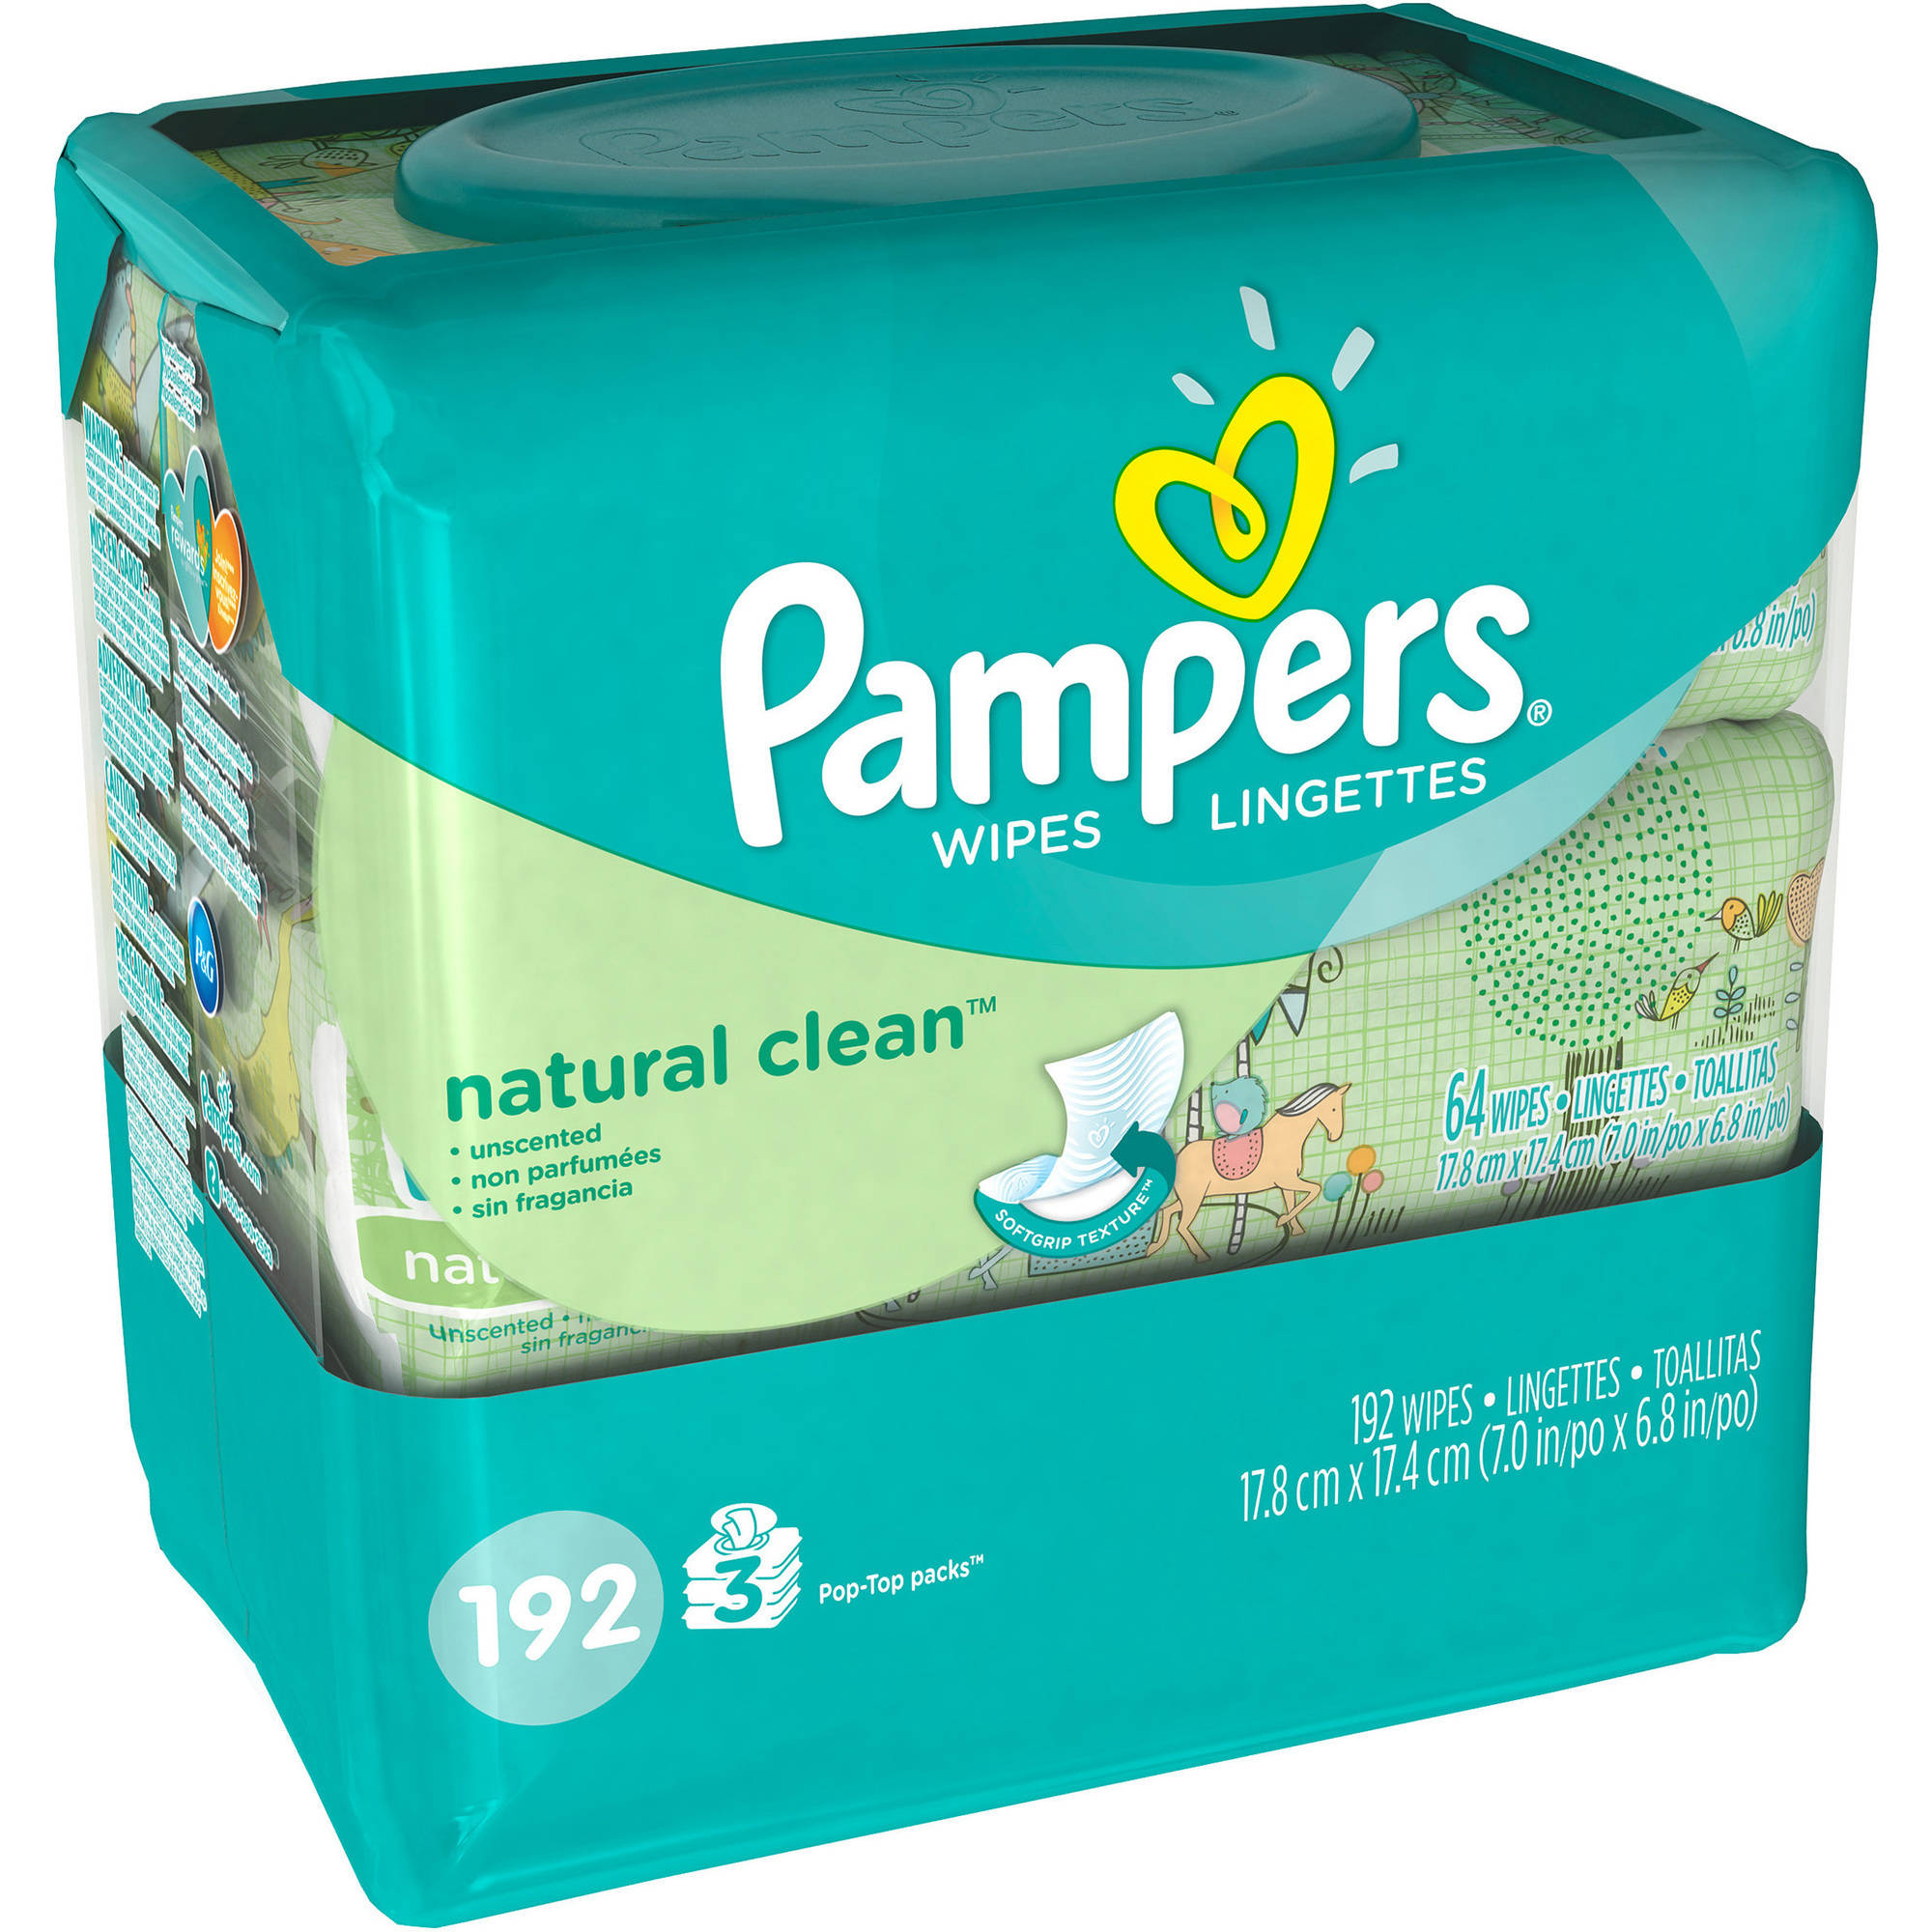 Pampers Natural Clean Baby Wipes, 64 sheets, 3 count